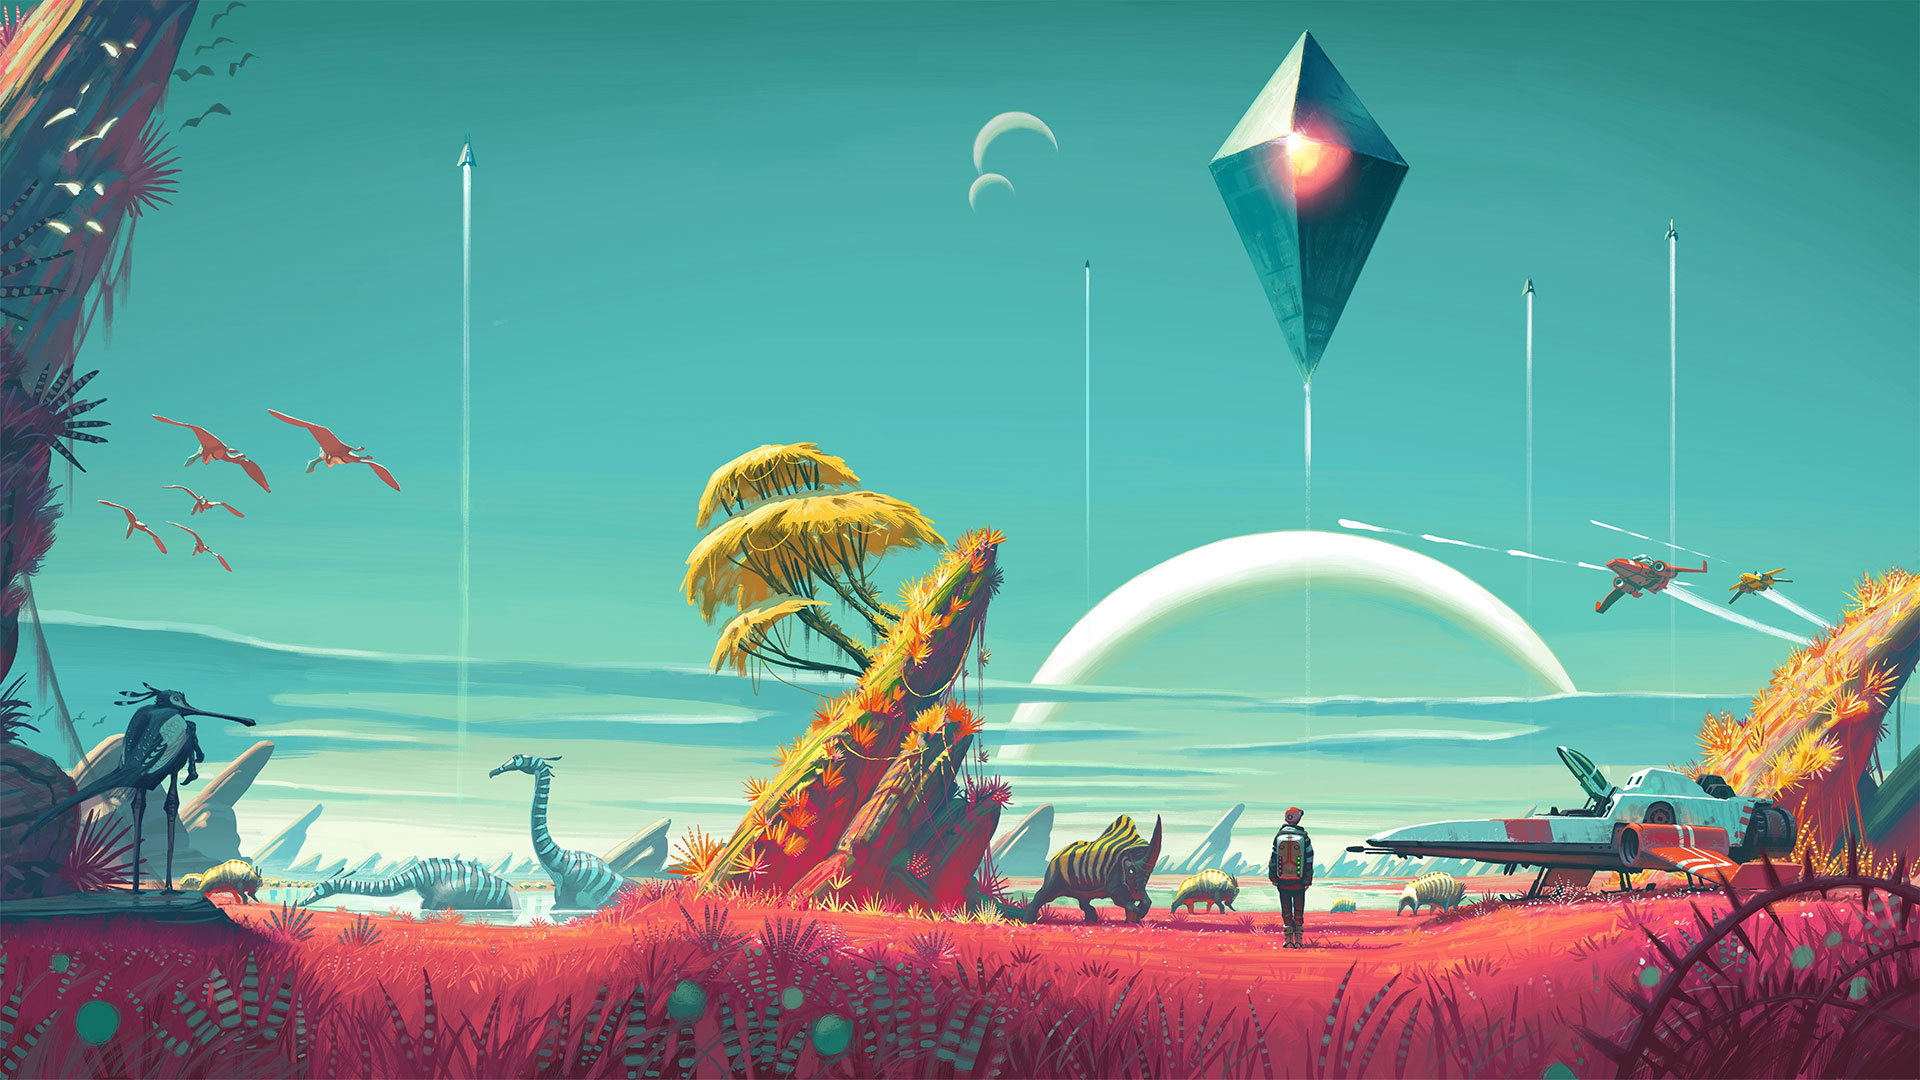 4k Hd Wallapaper: No Man's Sky Wallpapers In Ultra HD